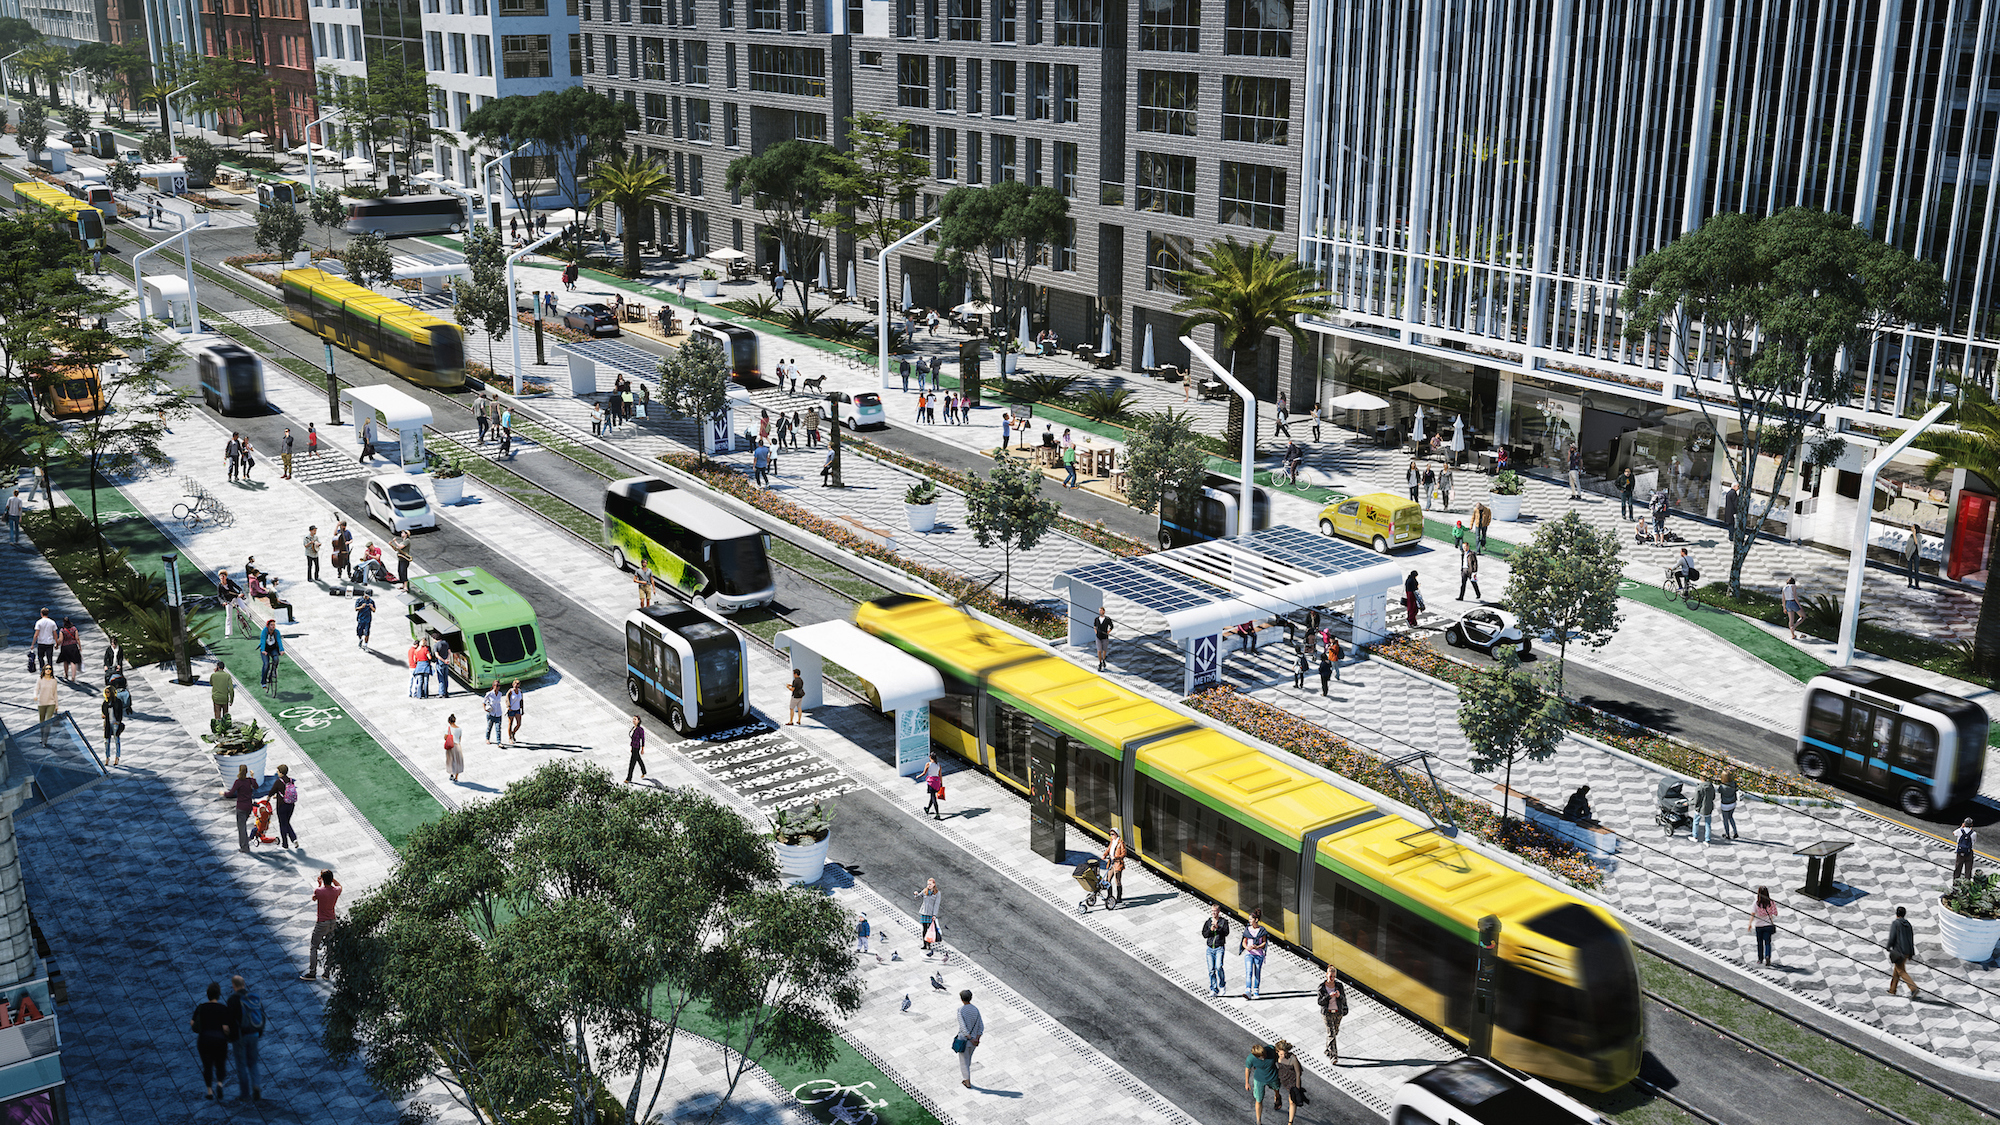 The future of urban mobility will be shaped by these six issues